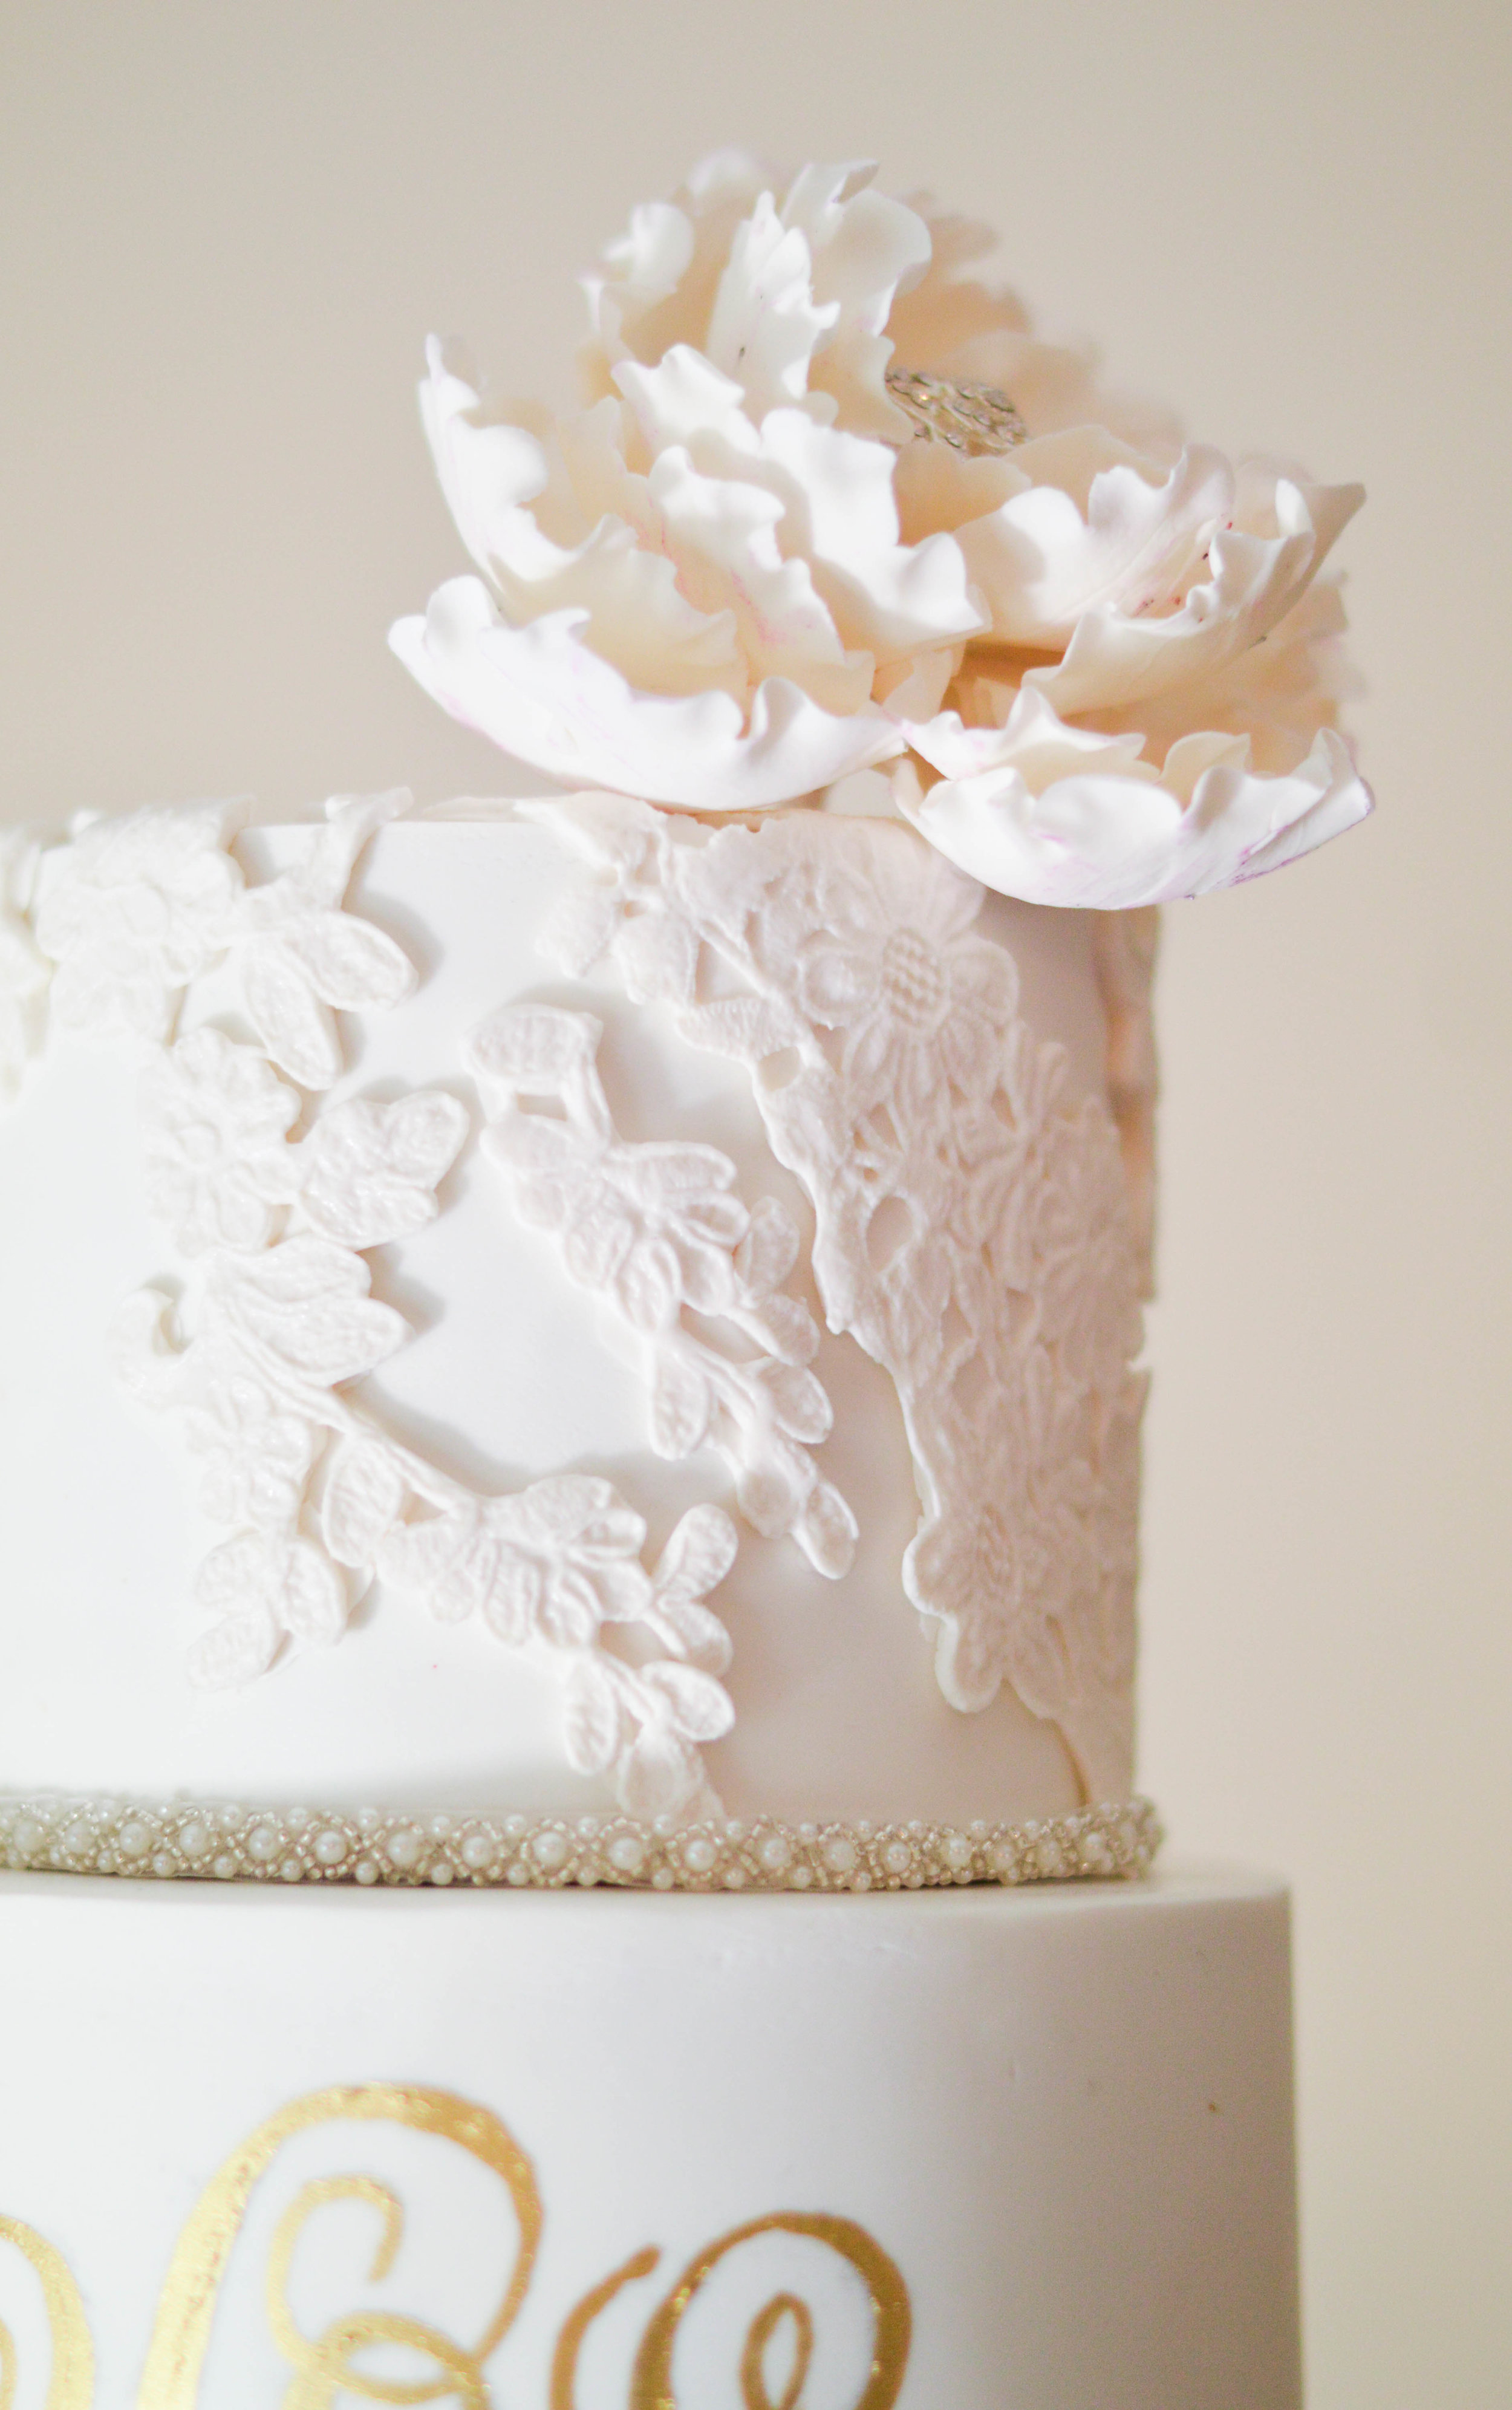 Lace and Luster - Pretty sugar-lace appliques adorned two of the tiers, which really added a touch of femininity and romance to the design.